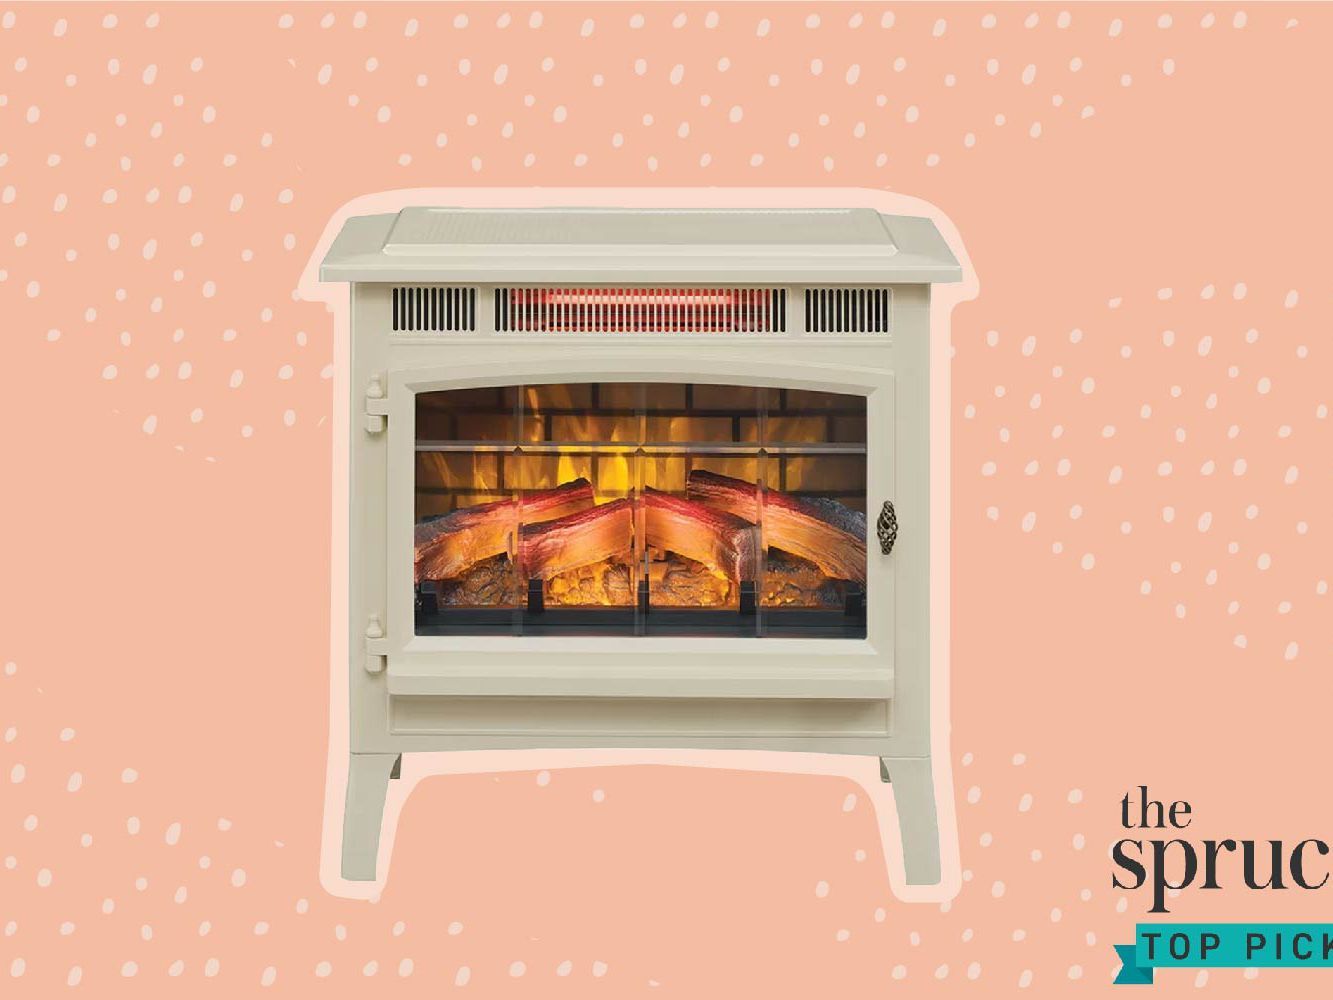 The 6 Best Electric Fireplaces Of 2021, How To Pick An Electric Fireplace Insert